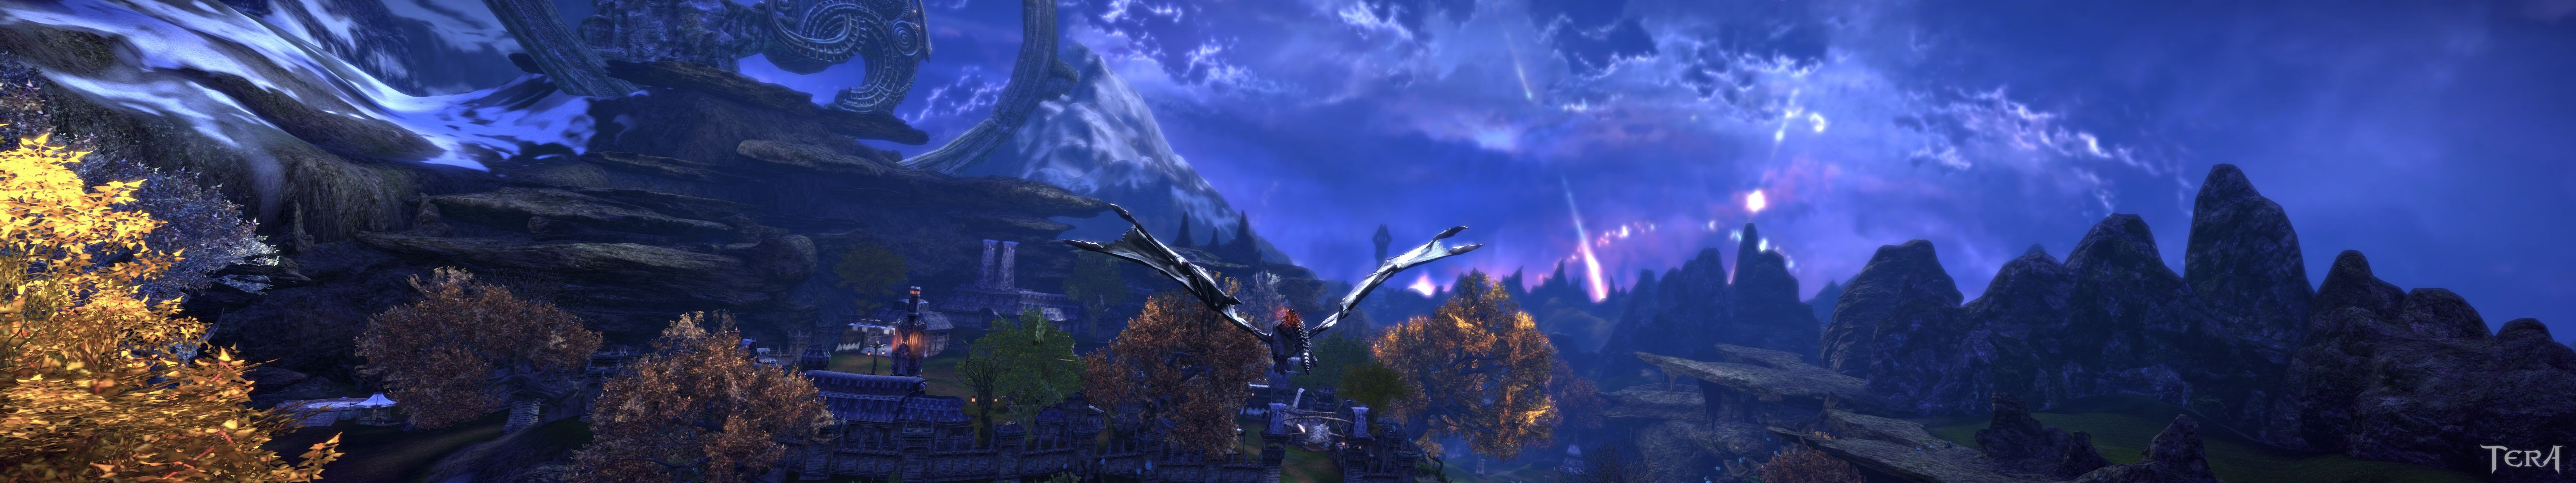 TERA: Rising - Flying into some new scenery. 3 monitors required to view at full resolution.